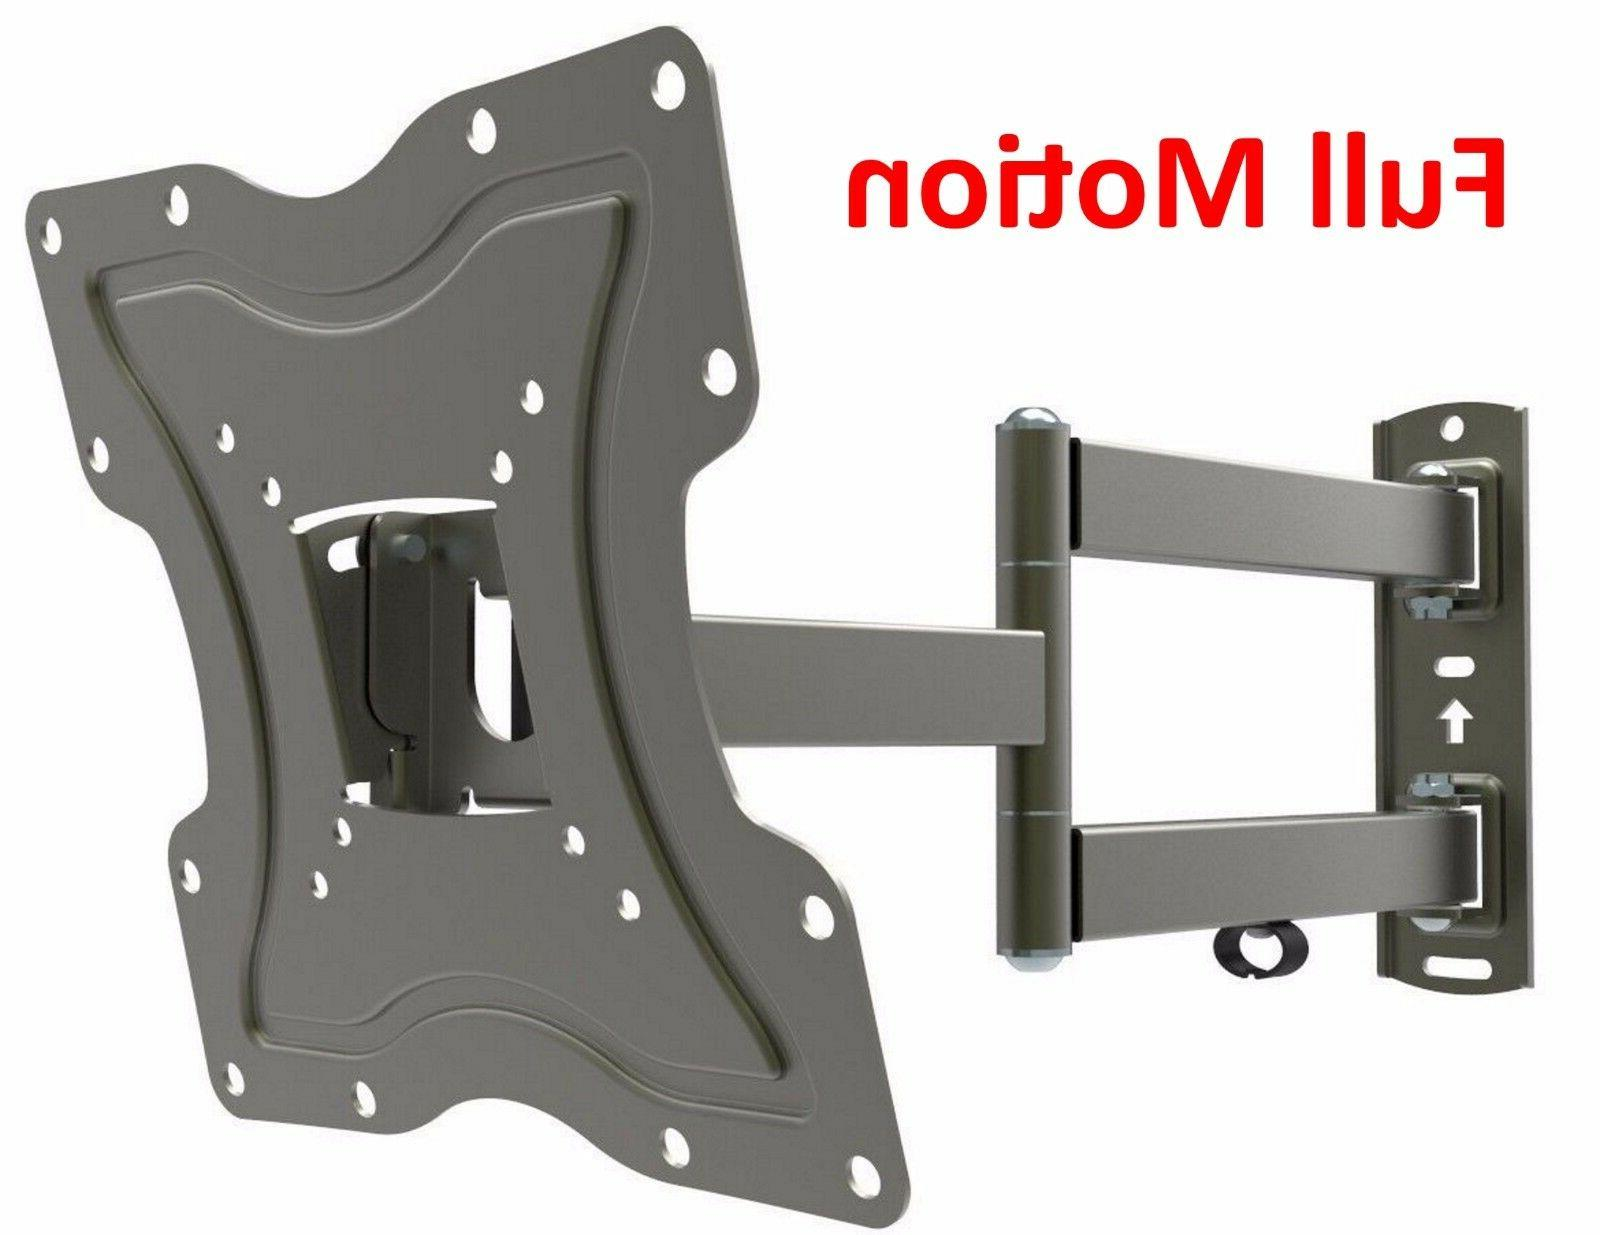 Full Motion TV Wall Mount Articulating Bracket 24 32 37 39 4